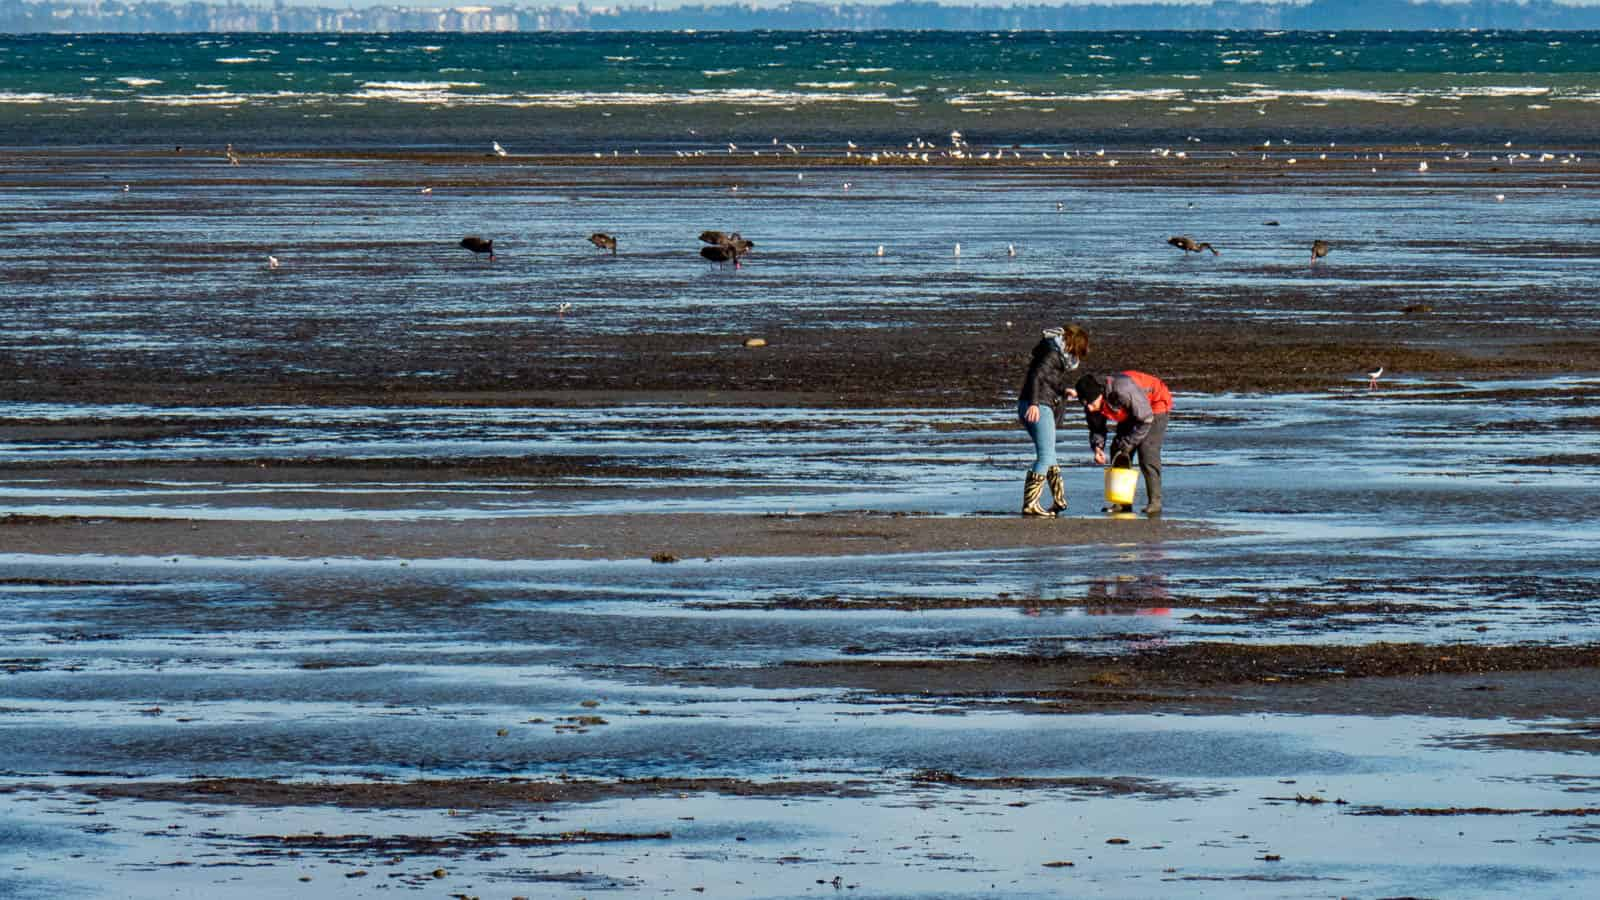 Collecting cockles on Okoromai Bay, Auckland, New Zealand